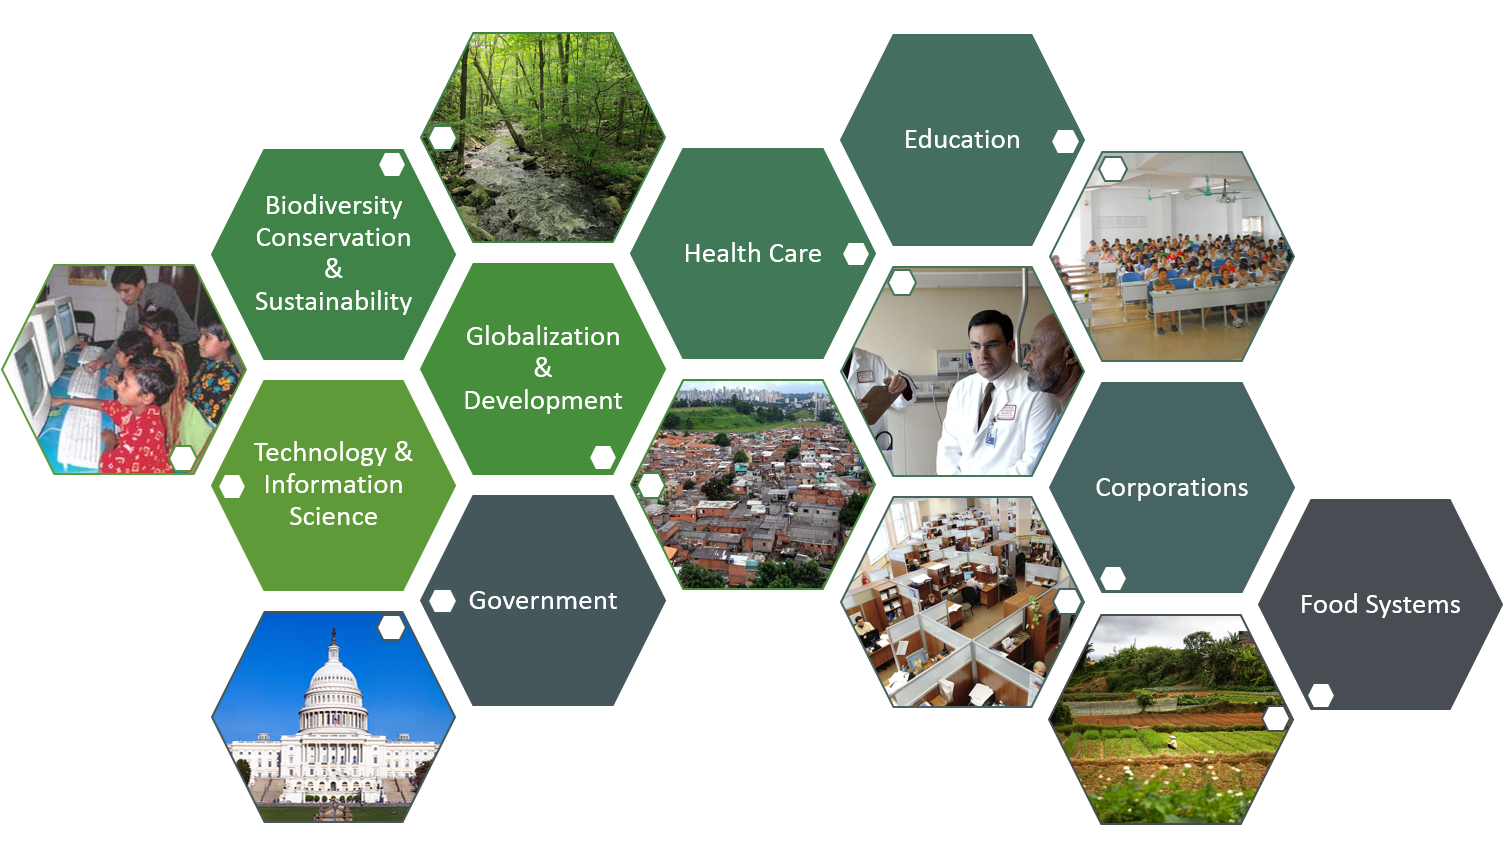 This graphic has images that represent the topics of education, health care, globalization & development, biodiversity conservation & sustainability, corporations, food systems, globalization & development, and technology & Information Science